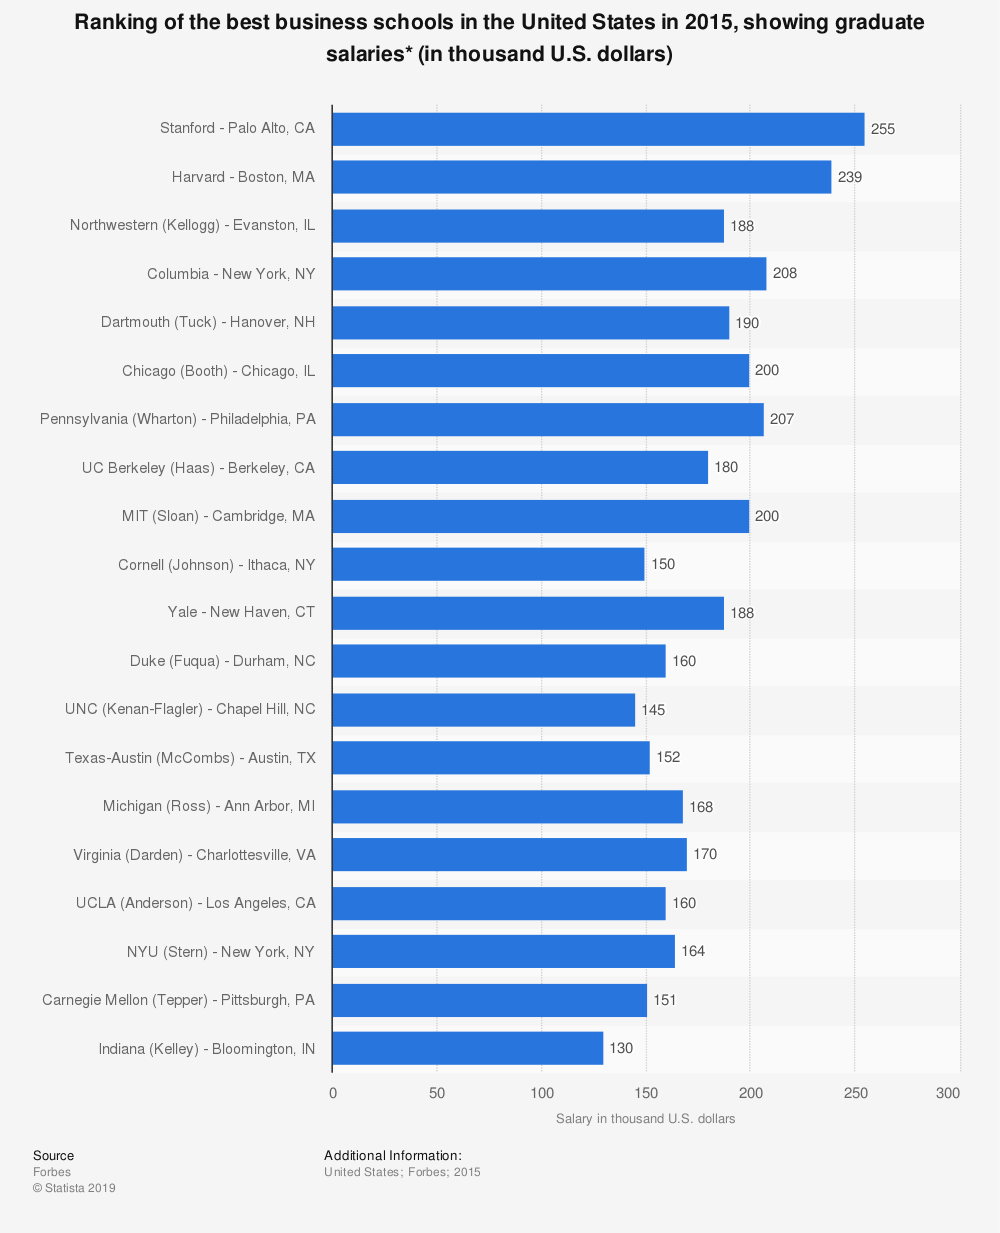 Statistic: Ranking of the best business schools in the United States in 2015, showing graduate salaries* (in thousand U.S. dollars) | Statista